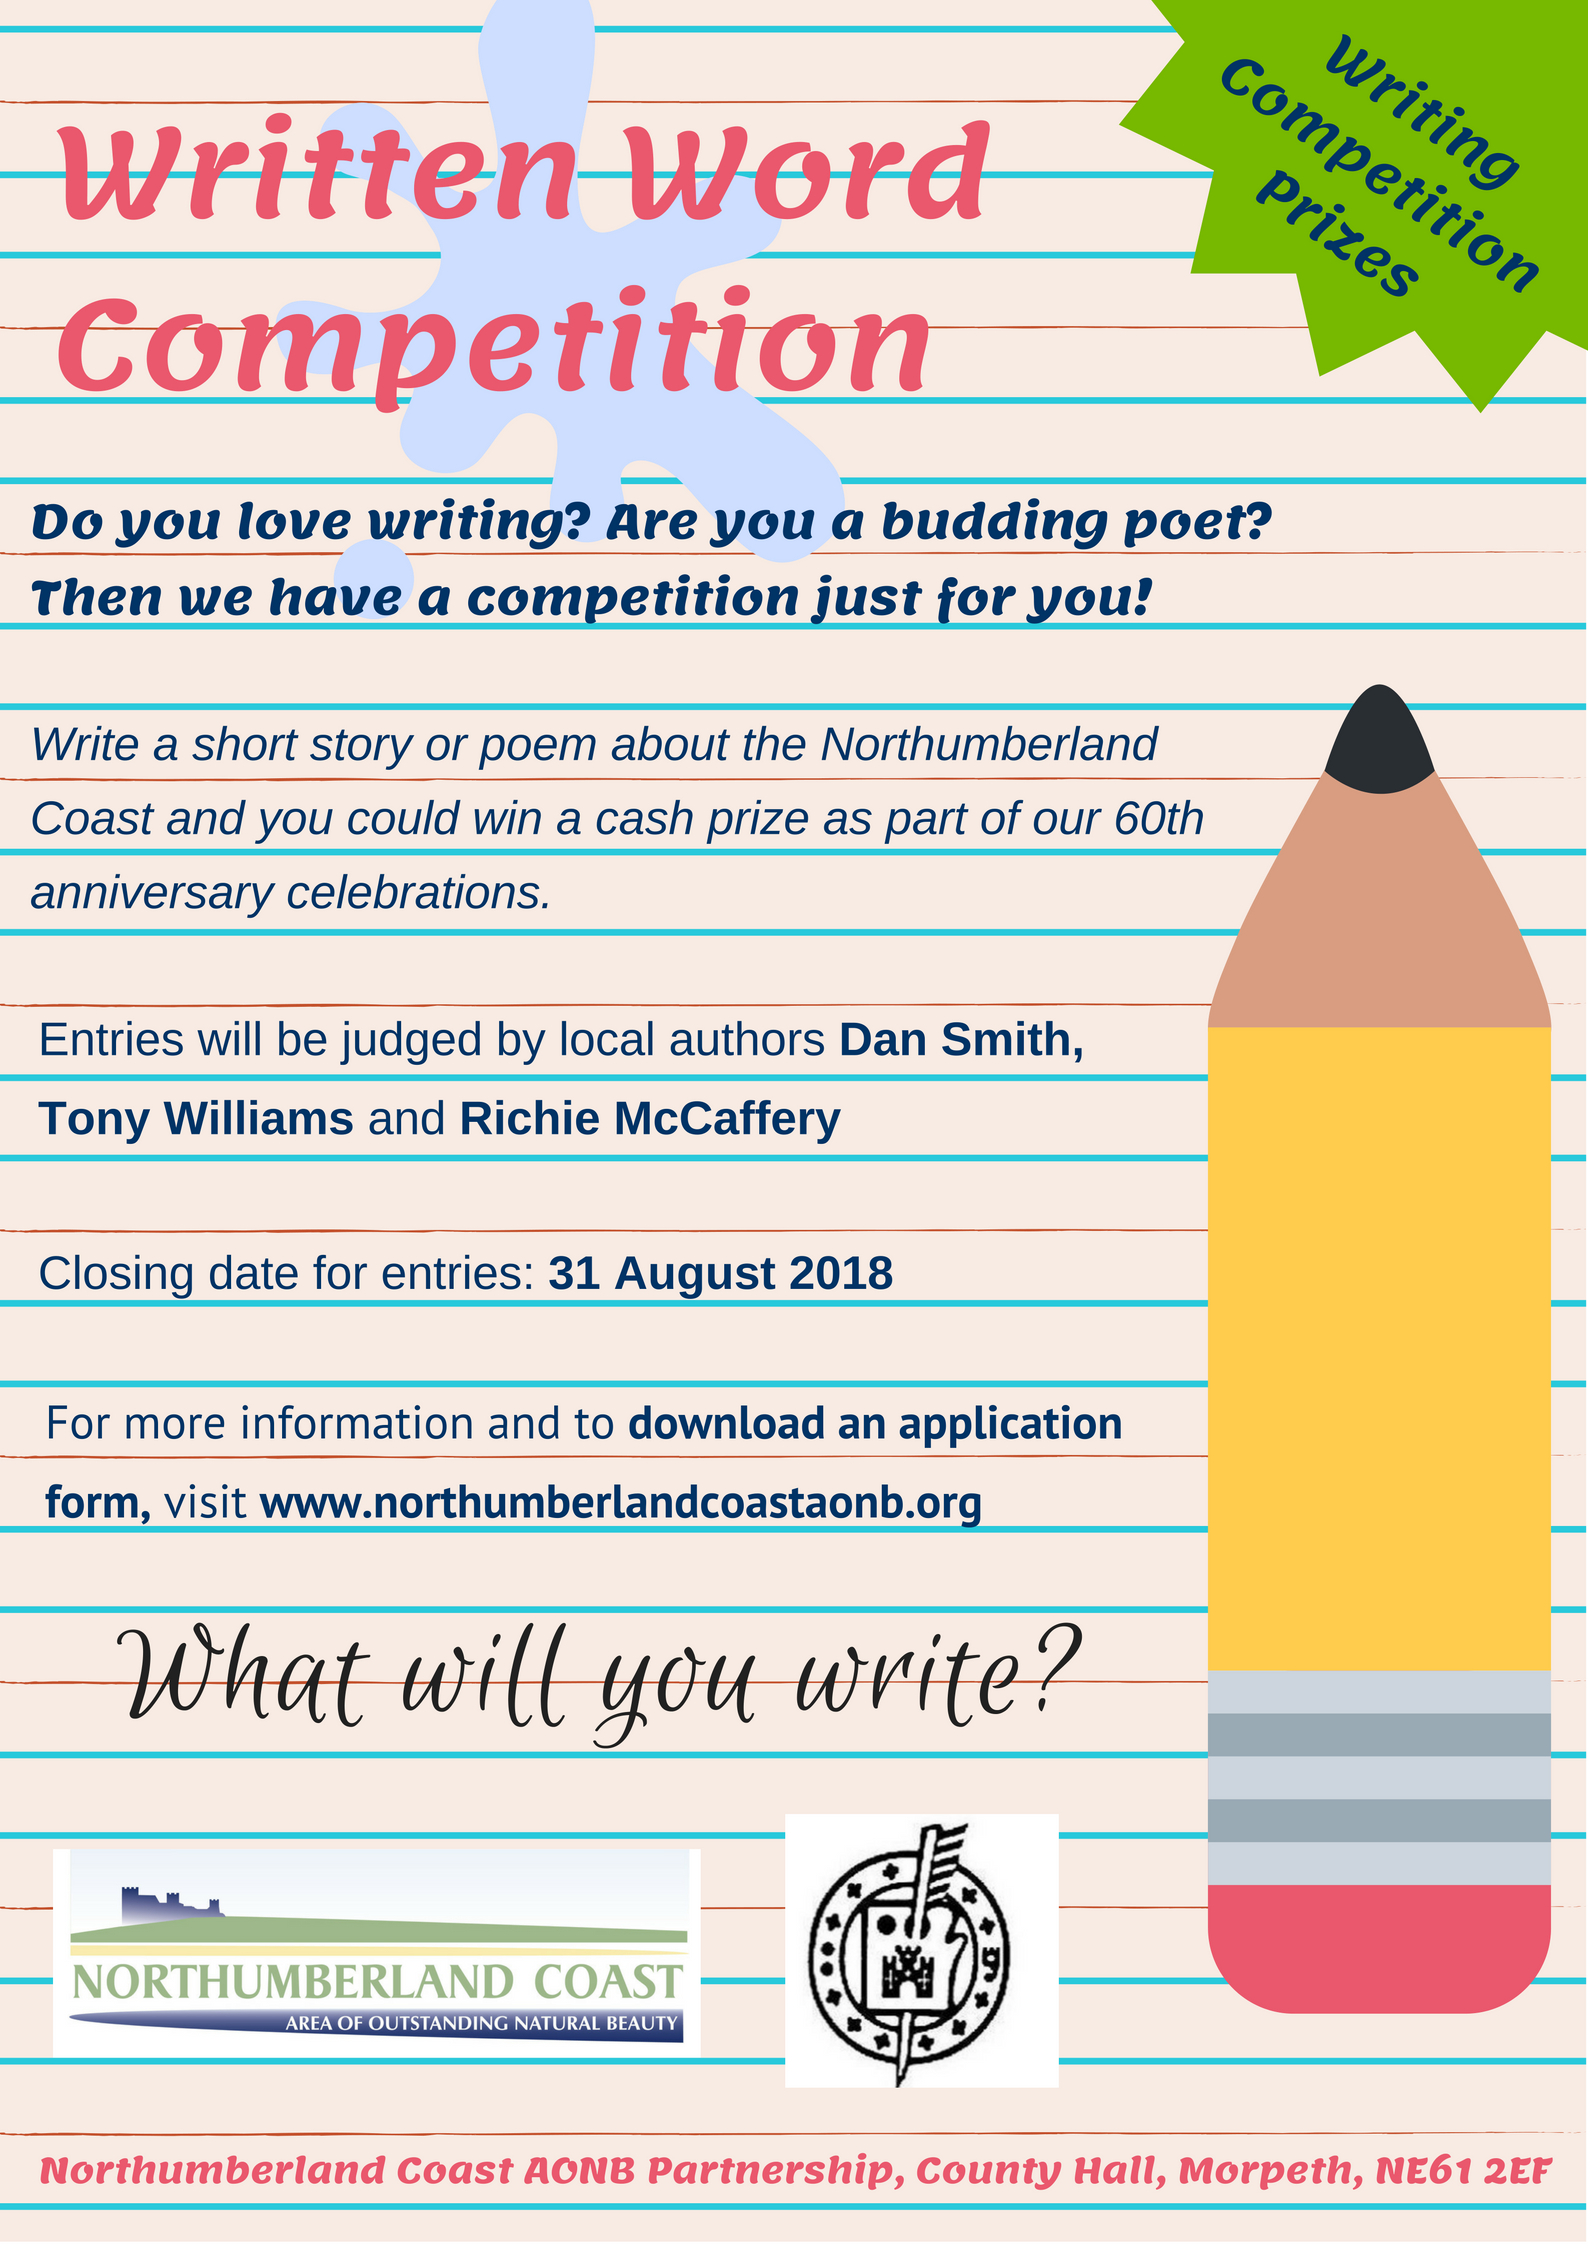 Northumberland Coast AONB launches written word competition. What will you write?